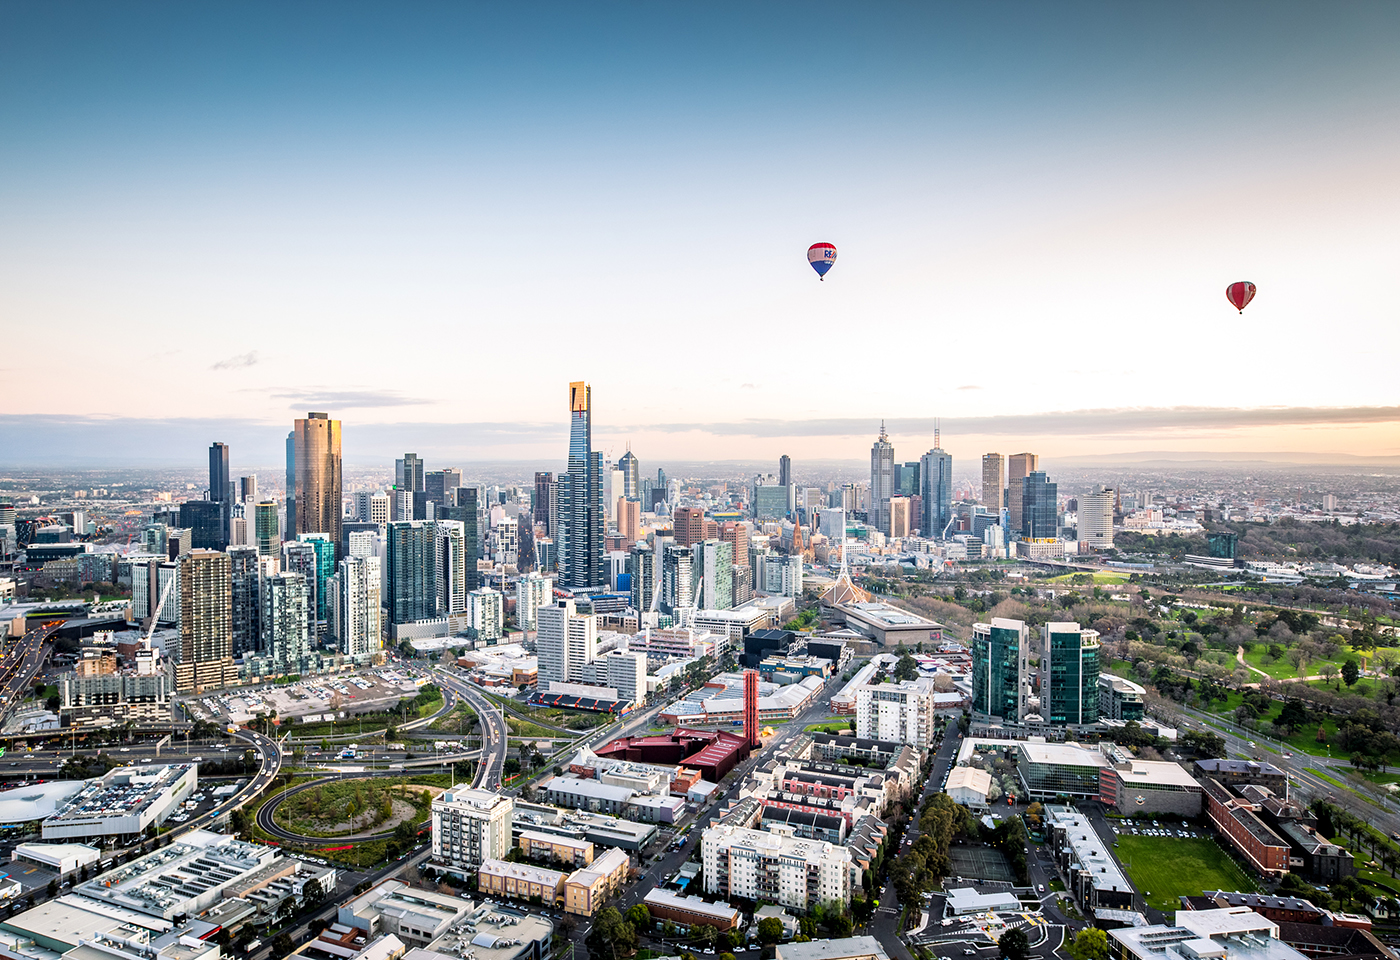 Aerial landscape image of Melbourne City by Global Ballooning